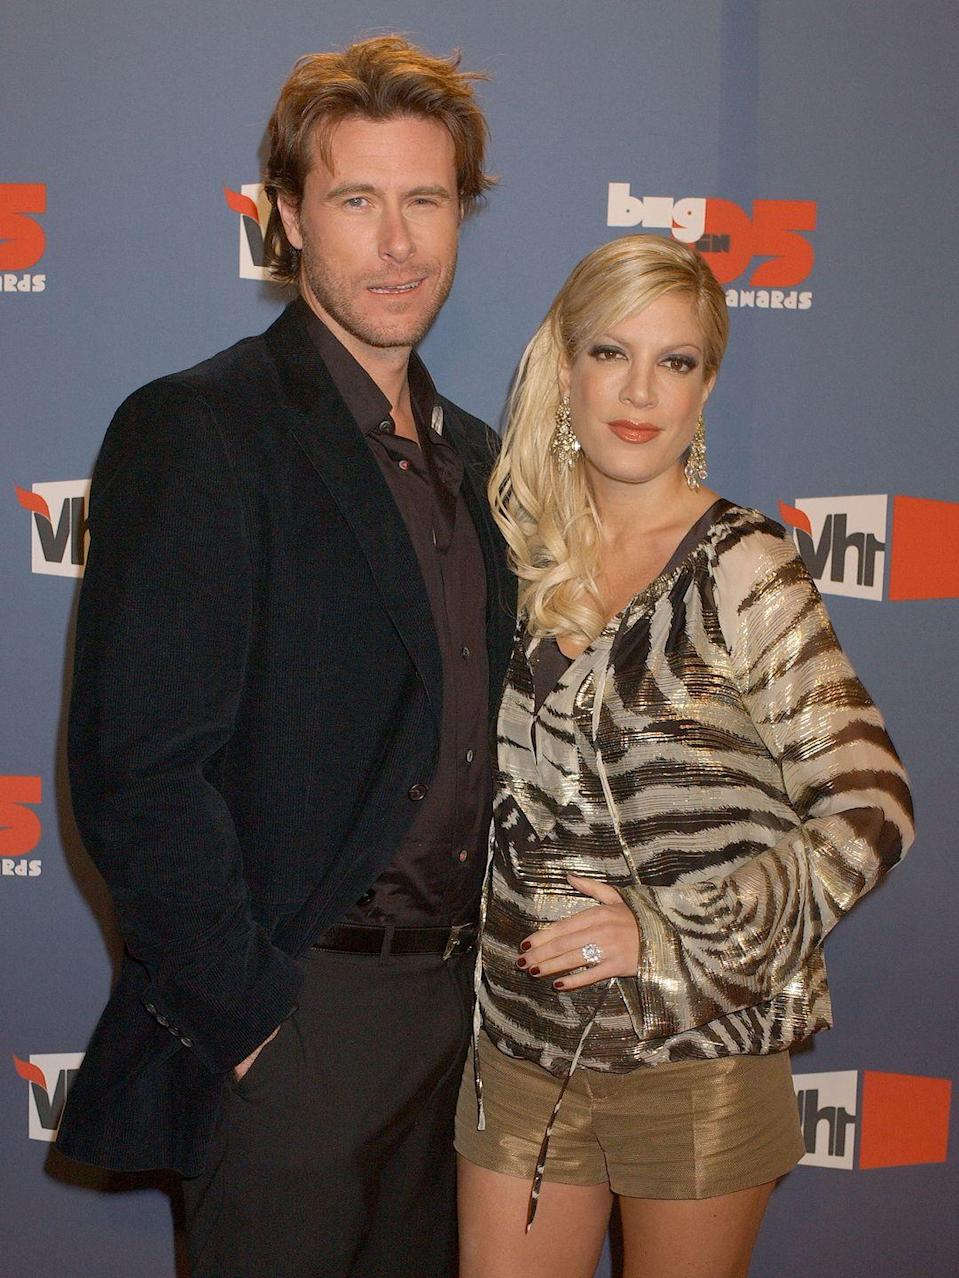 "<p>Both Spelling and McDermott were married when they started their affair. Spelling told <em>Entertainment Tonight</em> that the two <a href=""http://www.etonline.com/tv/152762_tori_spelling_says_she_and_dean_mcdermott_had_sex_the_first_night_they_met"" rel=""nofollow noopener"" target=""_blank"" data-ylk=""slk:had sex the first night they met."" class=""link rapid-noclick-resp"">had sex the first night they met.</a> Their relationship started when they worked together on the TV movie <em>Mind Over Murder.</em></p>"